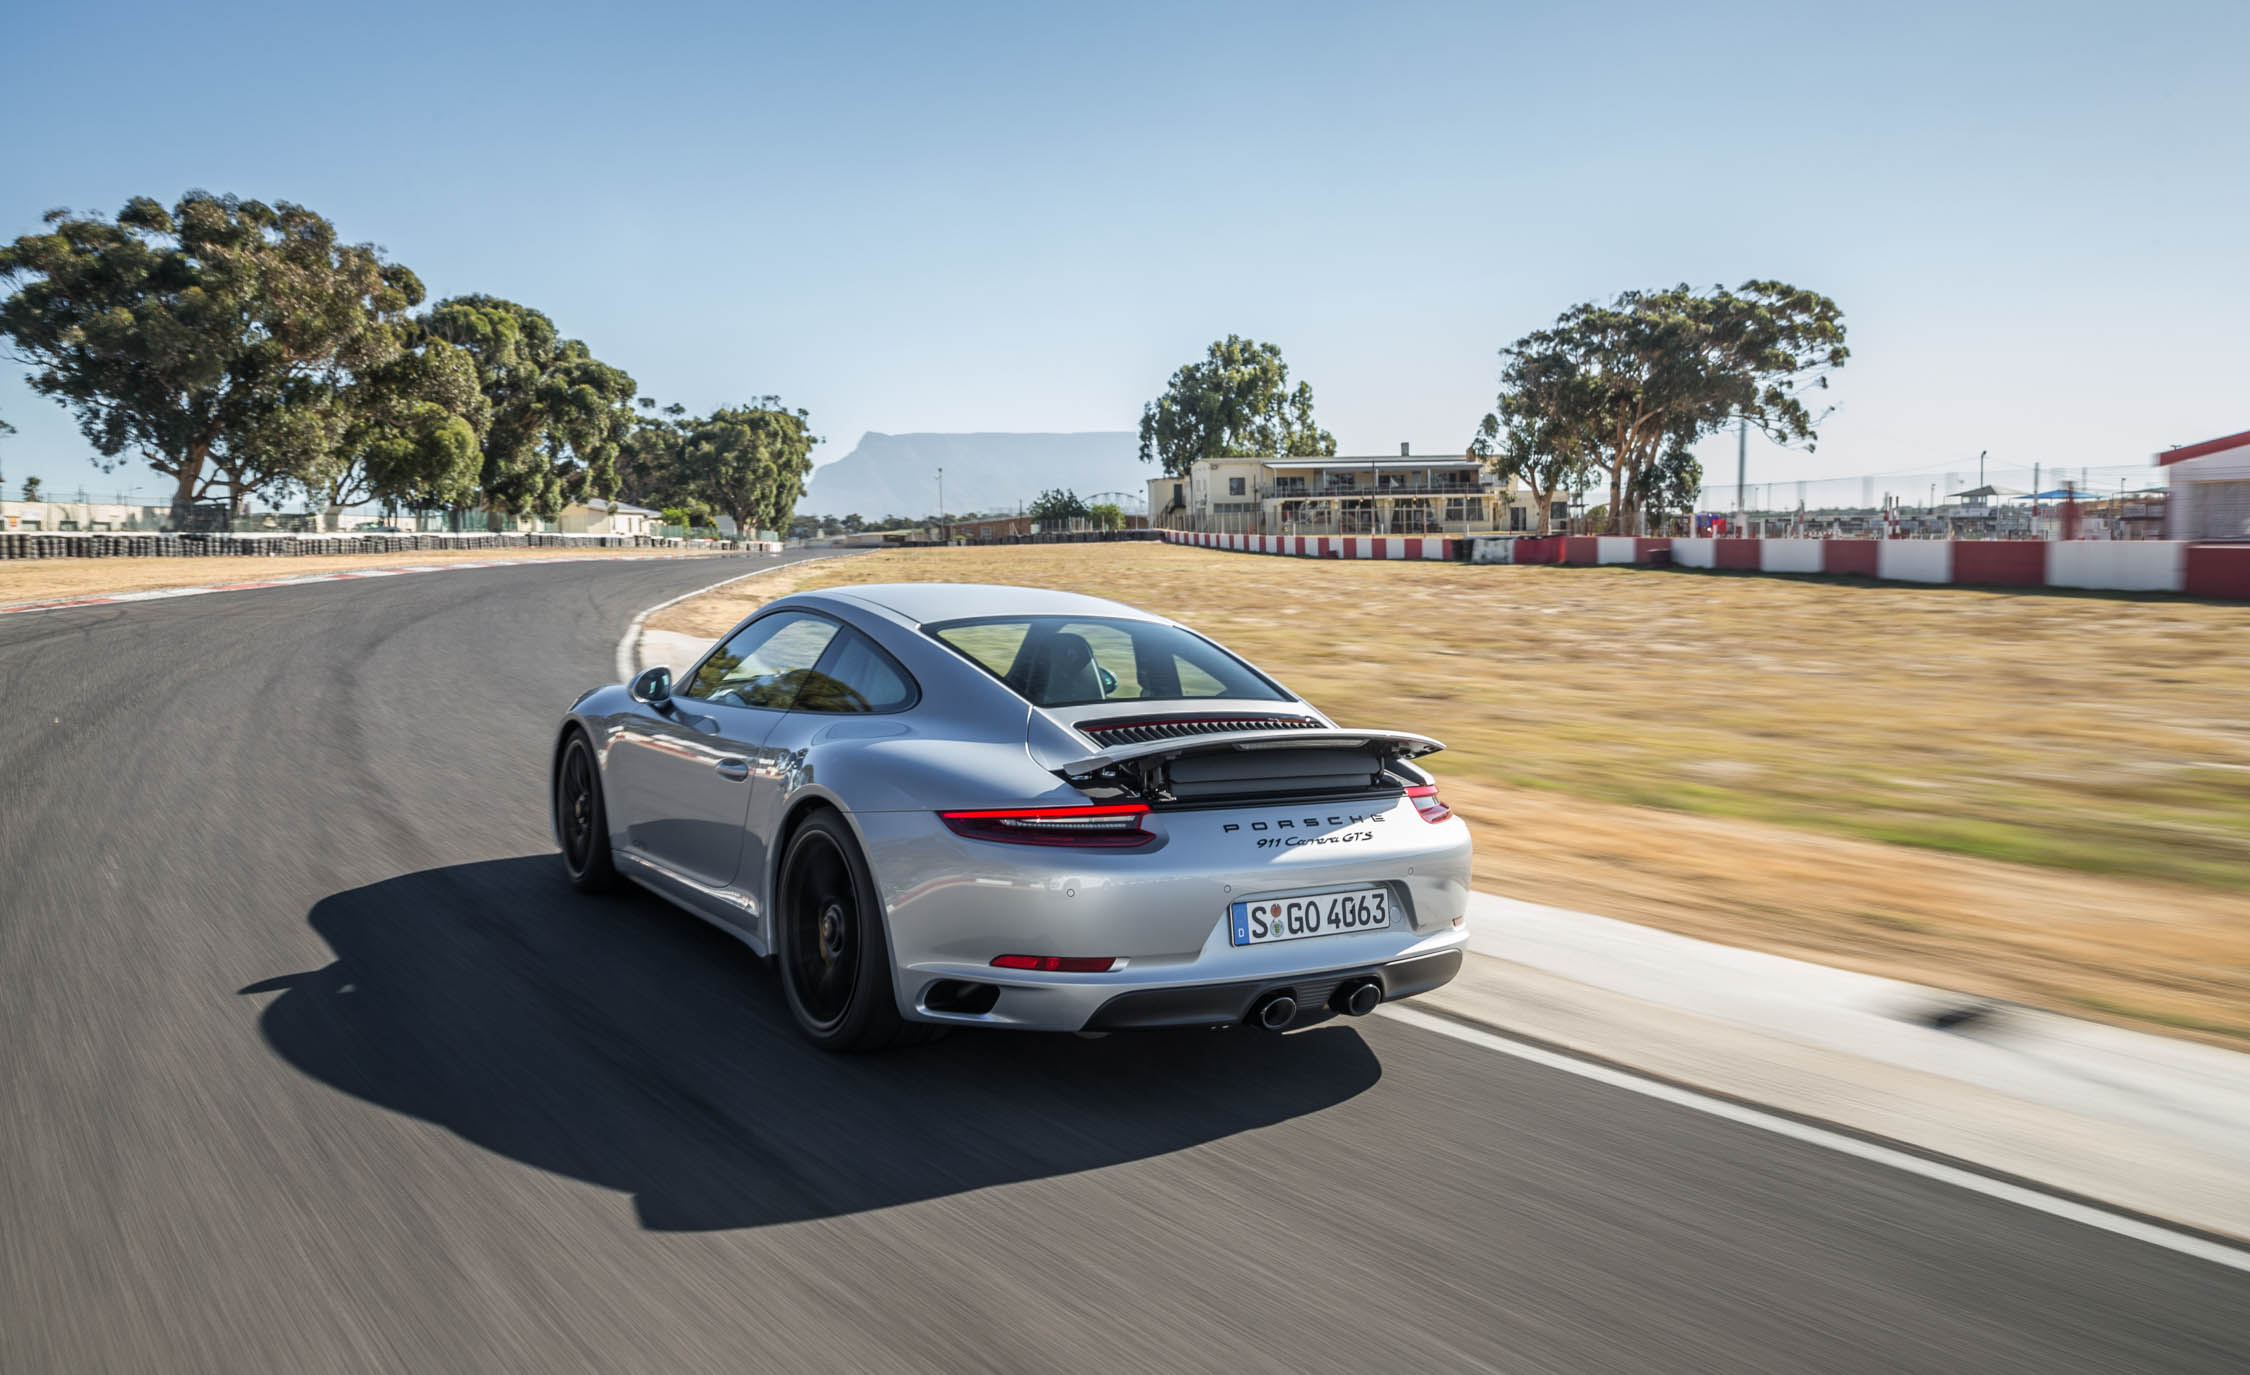 2017 Porsche 911 Carrera GTS Coupe Test Drive Rear And Side View (Photo 57 of 97)